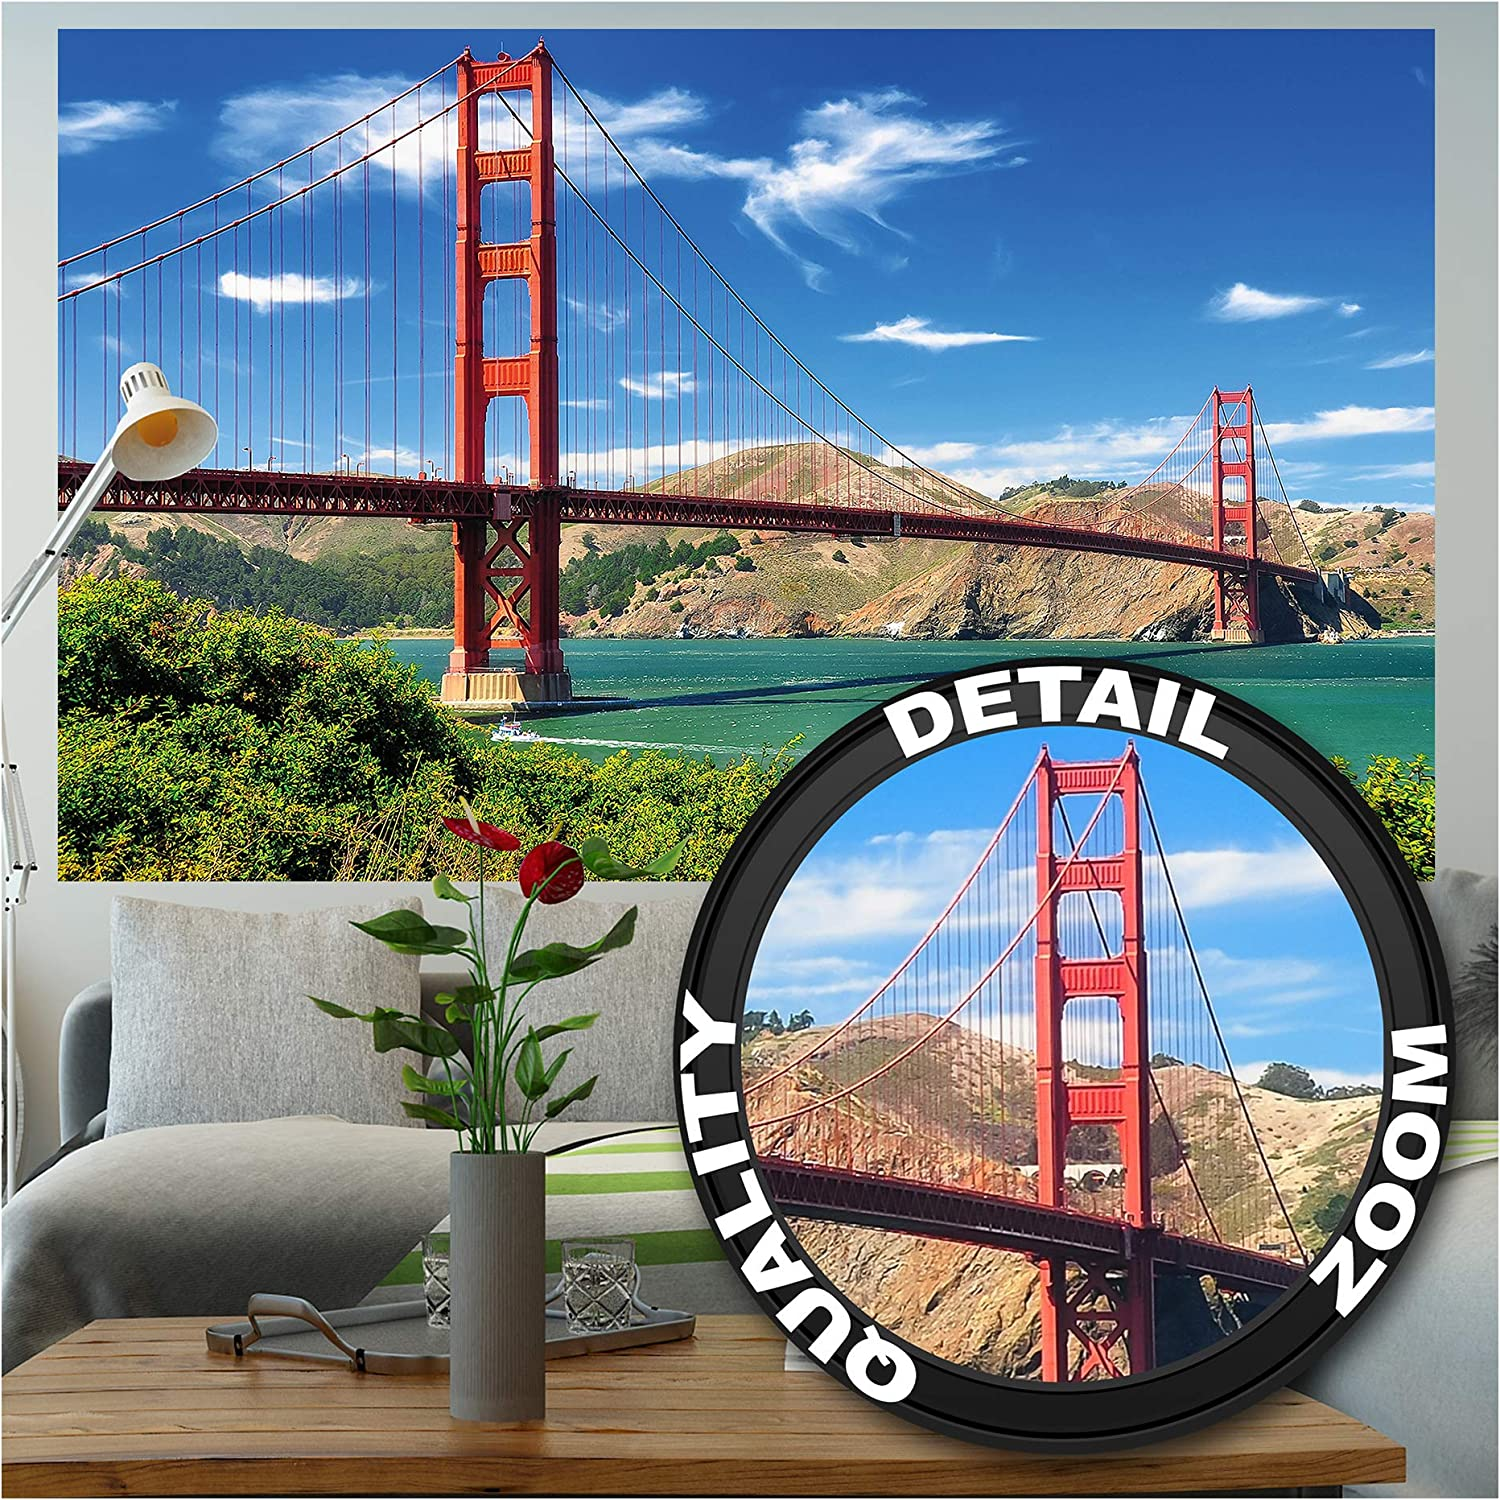 Amazon Com Great Art Photo Wallpaper Golden Gate Picture Decoration Usa Architectural Site San Francisco Monument Suspension Bridge West Coast Image Decor Wall Mural 82 7x55 1in 210x140cm Home Improvement